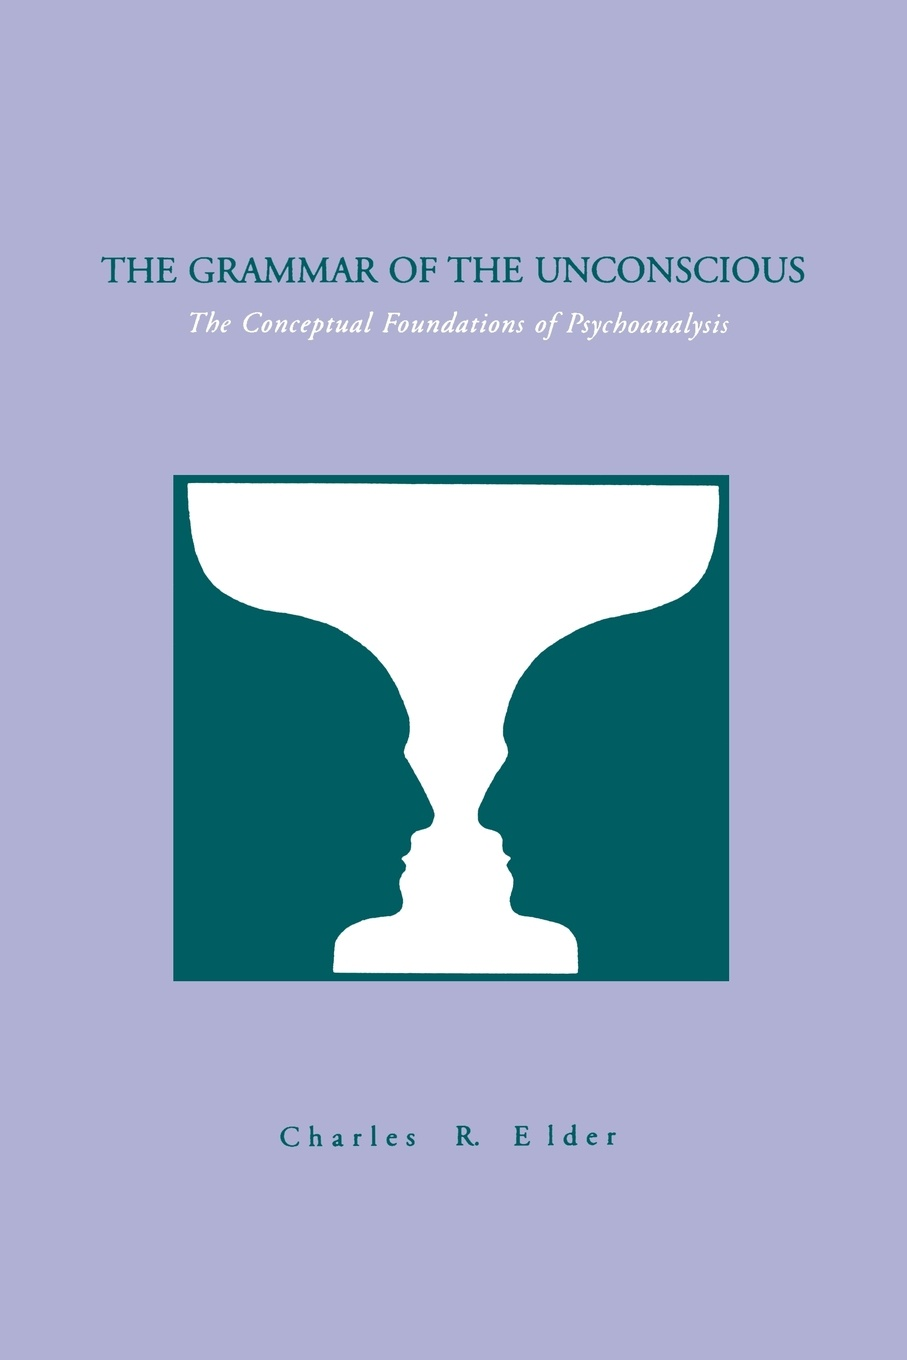 Charles R Elder The Grammar of the Unconscious The Conceptual Foundations of Psychoanalysis